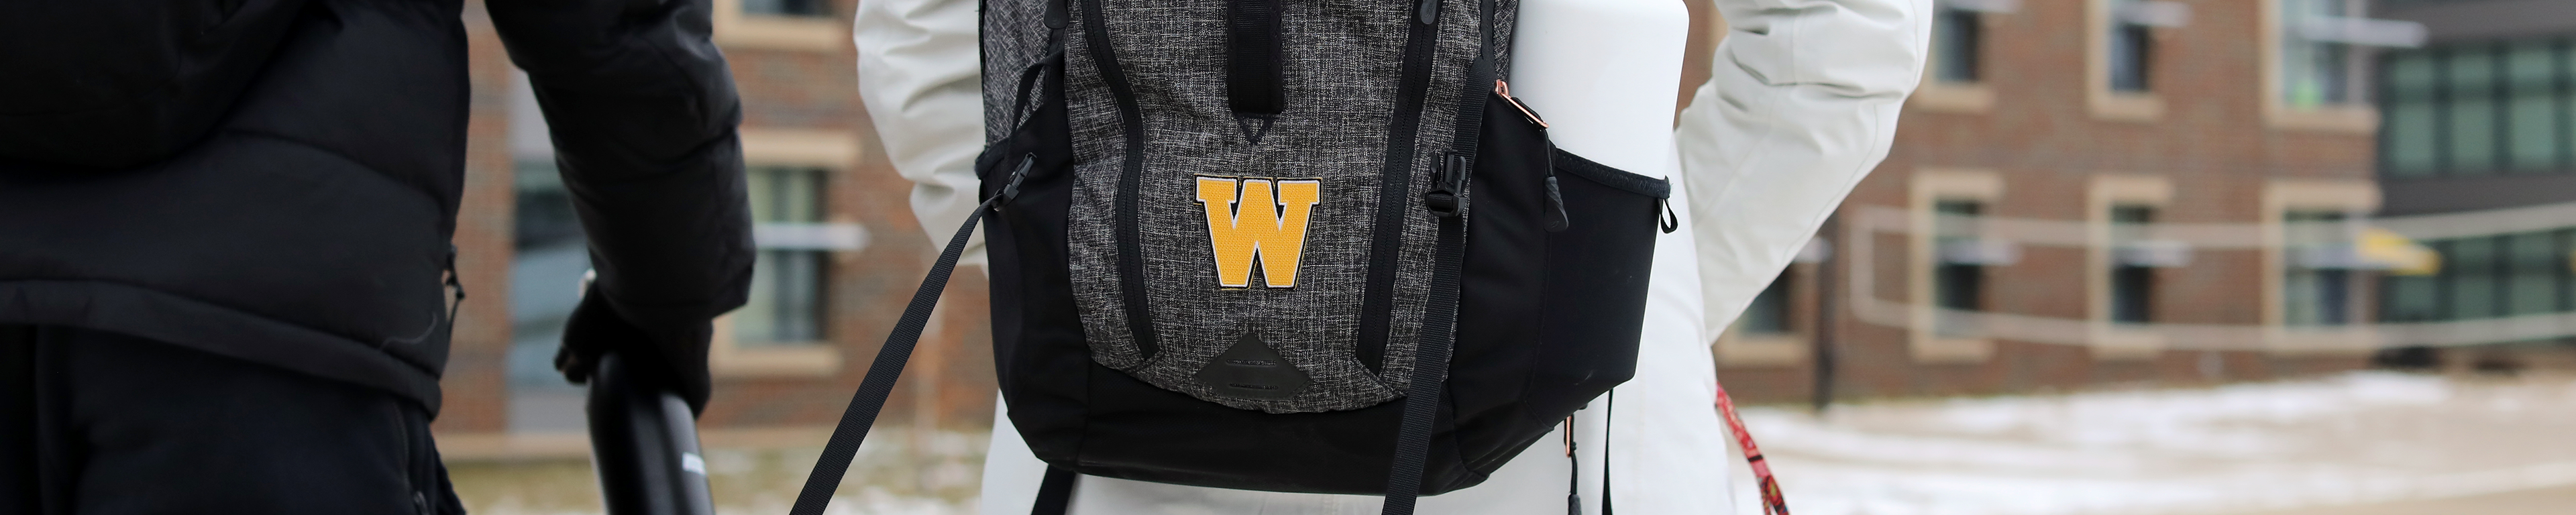 Page banner: WMU logo patch on a student backpack